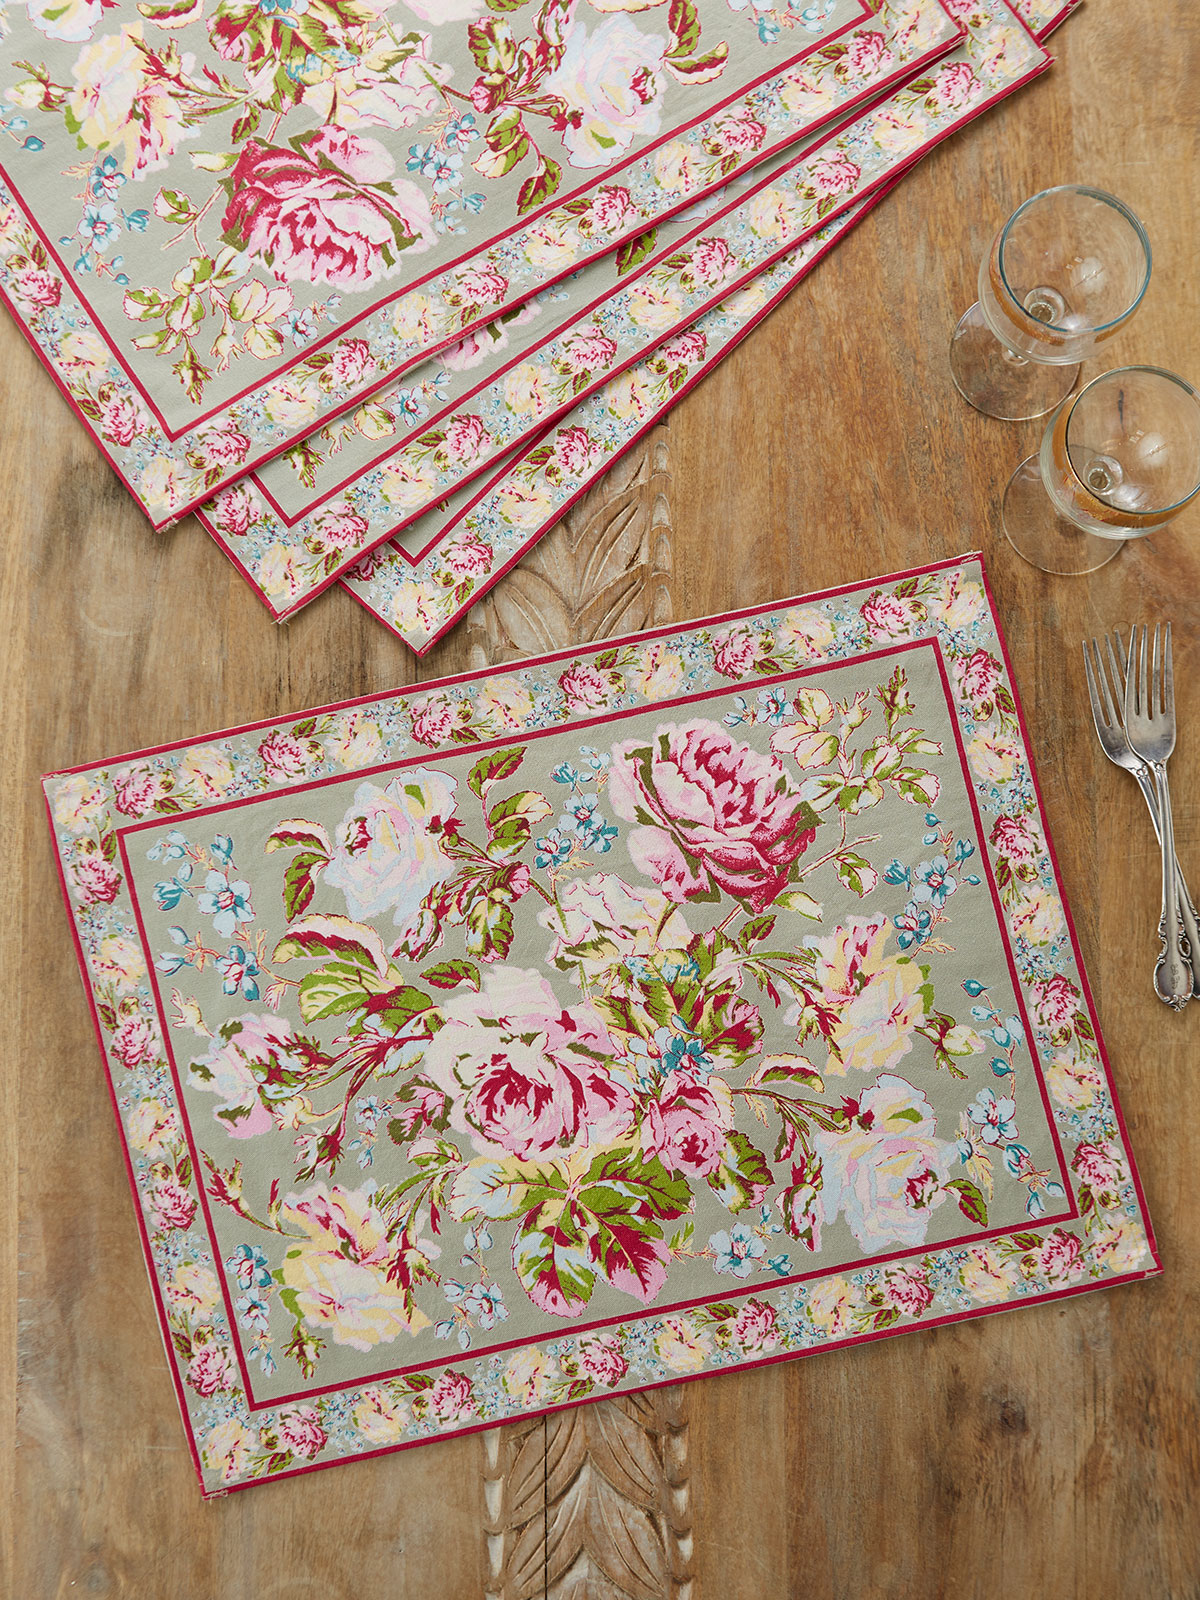 Victorian Rose Placemat Set of 4